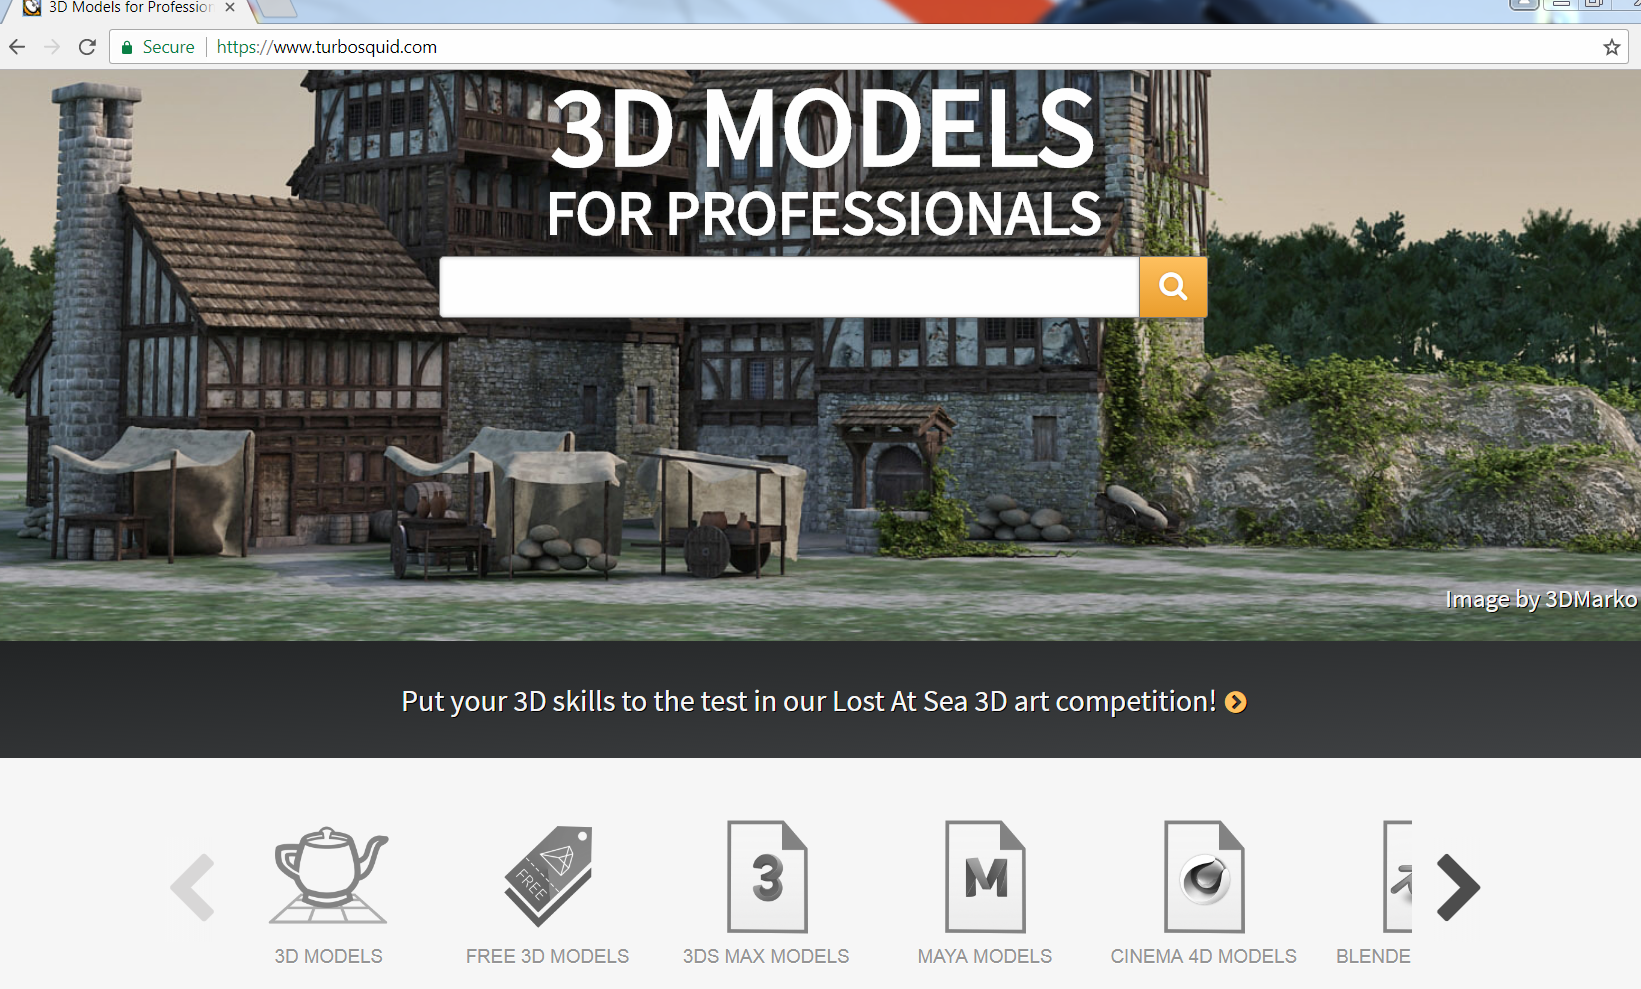 Any great to place for a beginner to sell 3d models online